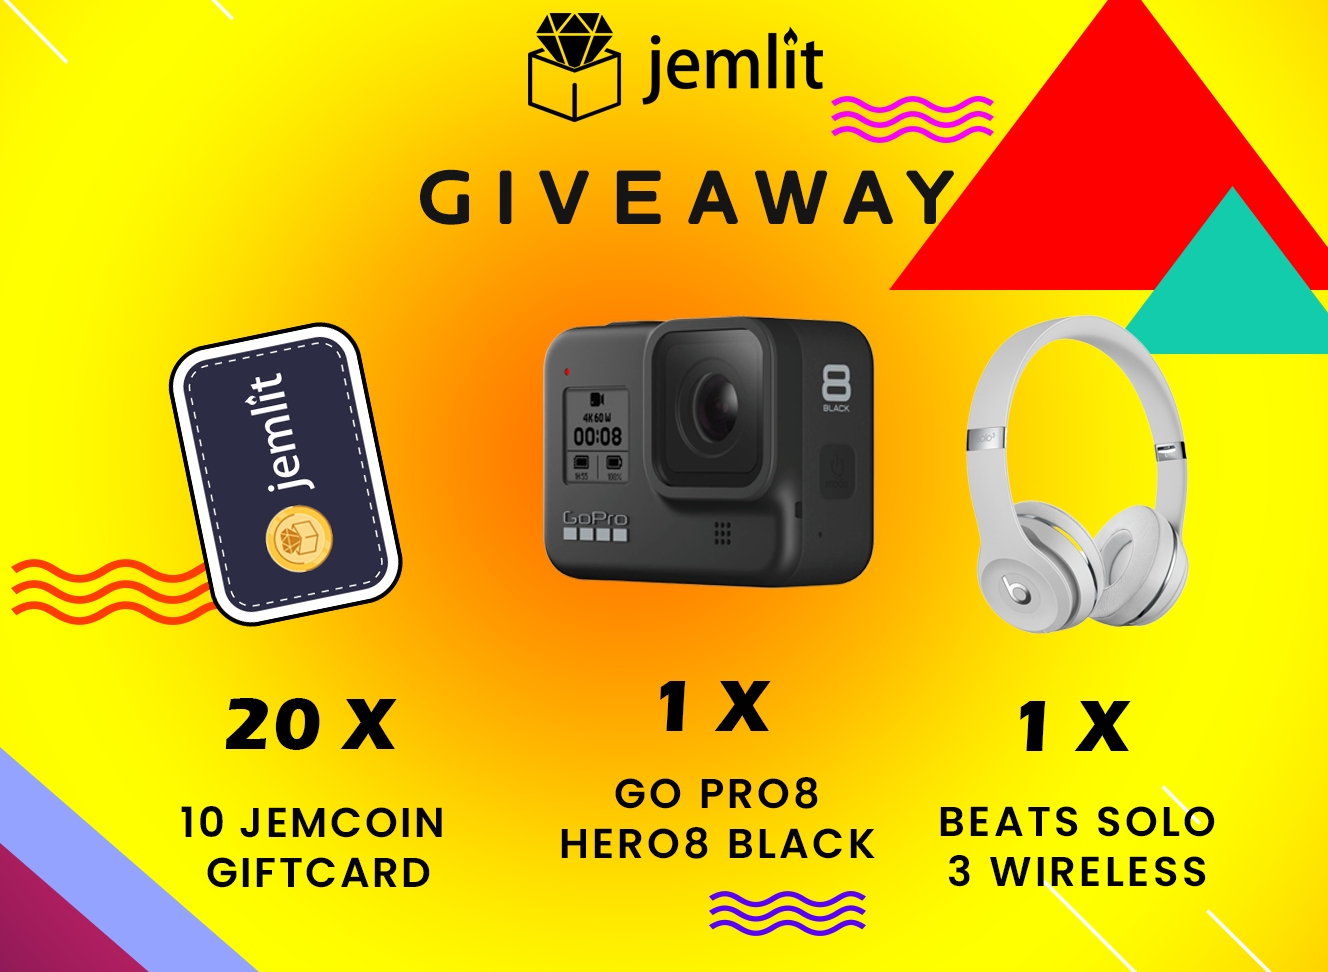 Go Pro Hero 8 Nero, Beat Solo 3 Wireless and 20x Jemcoin Giftcard   except UK Giveaway Image